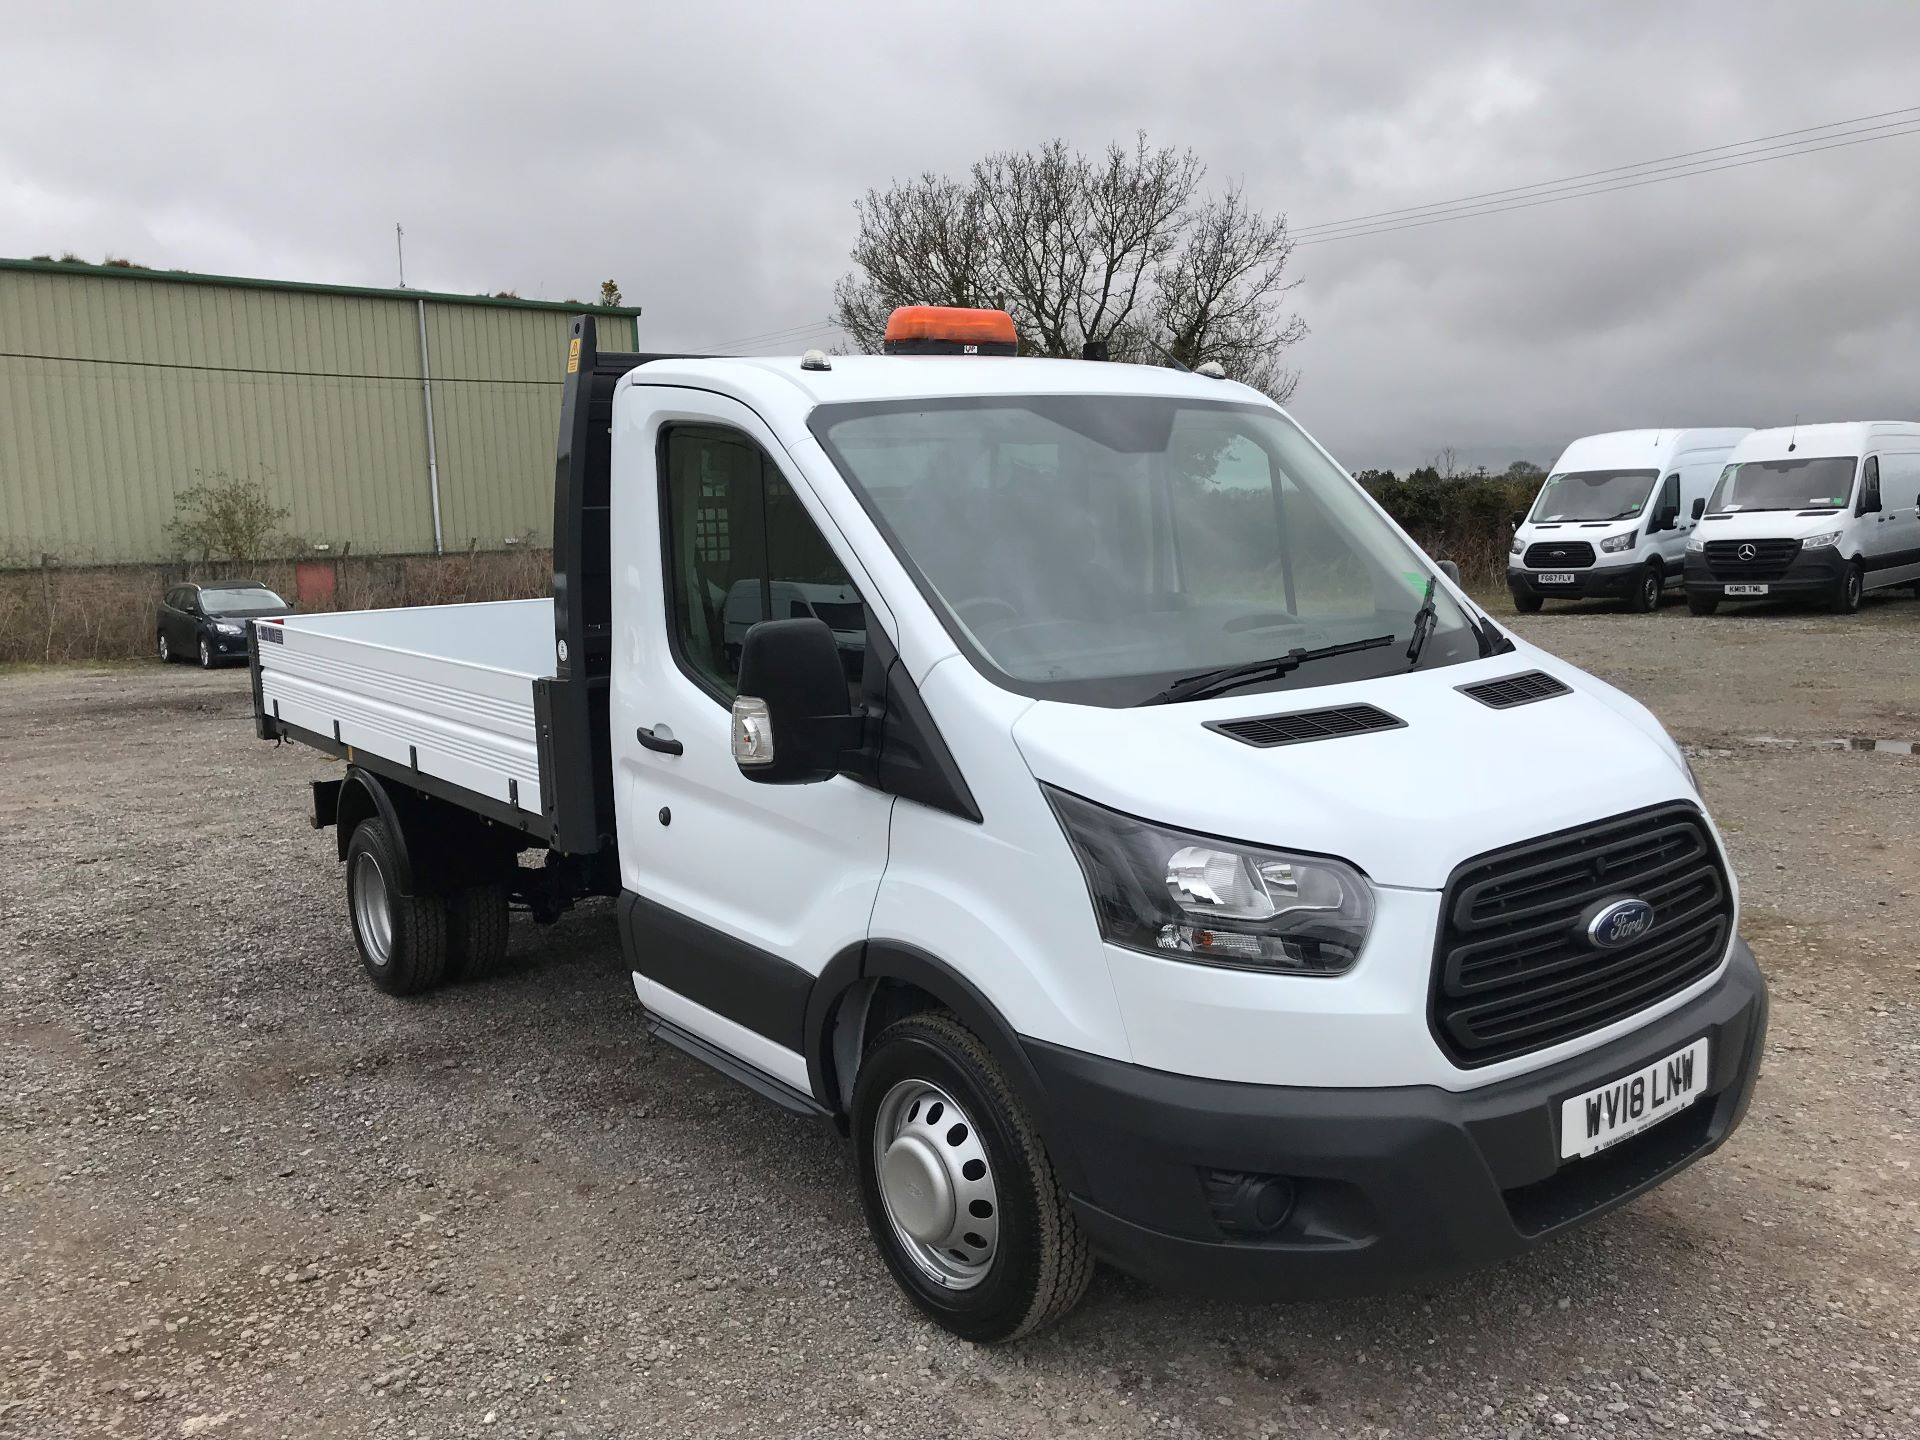 2018 Ford Transit 2.0 Tdci 130Ps 'One Stop' Tipper [1 Way] Euro 6 (WV18LNW)